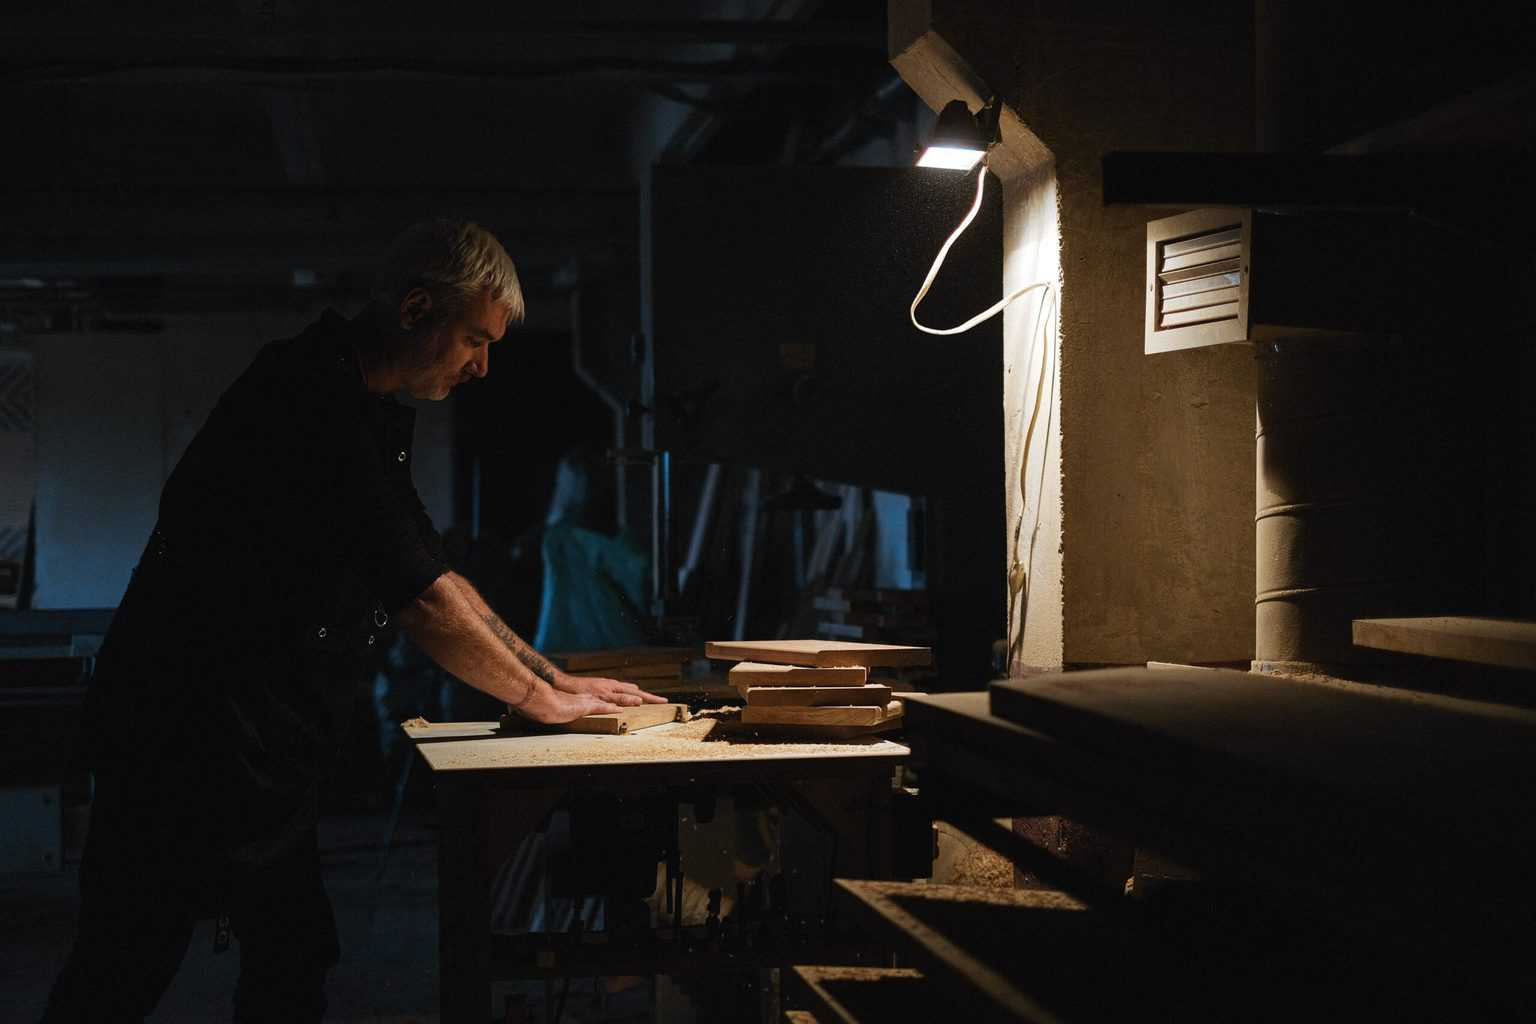 A man handling wood with small light